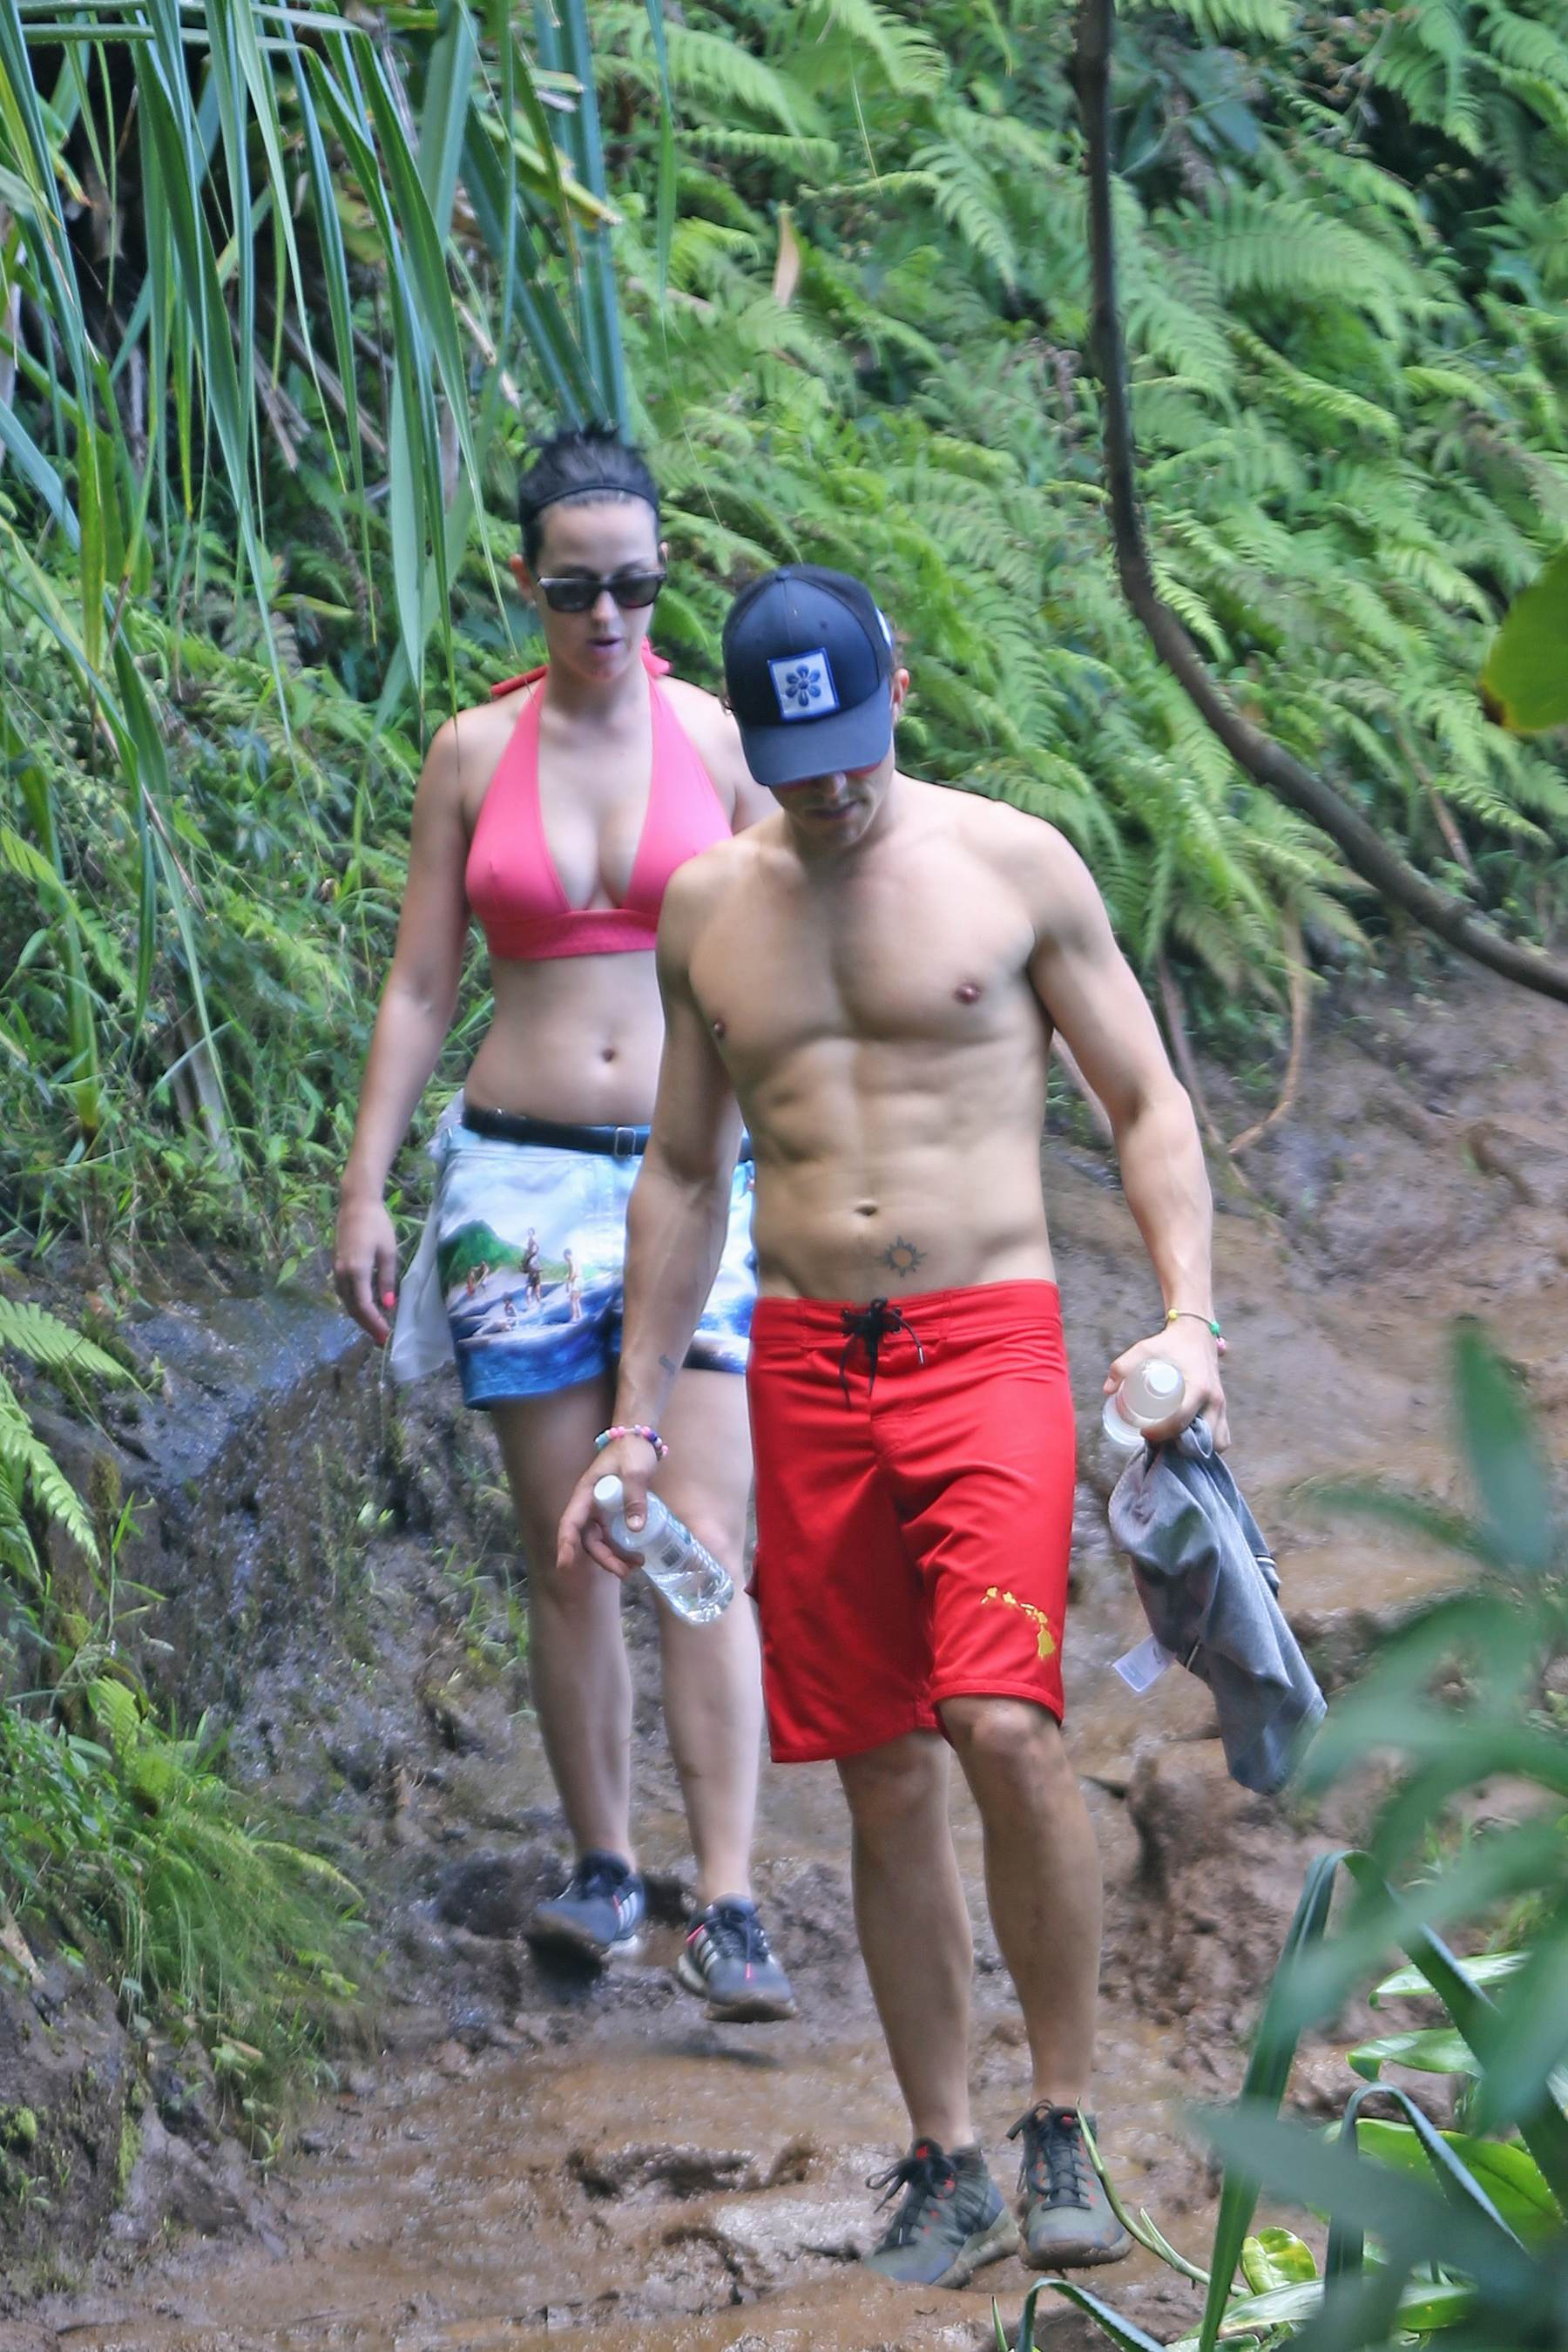 Katy Perry and Orland Bloom Romantic Outing in Hawaii-1